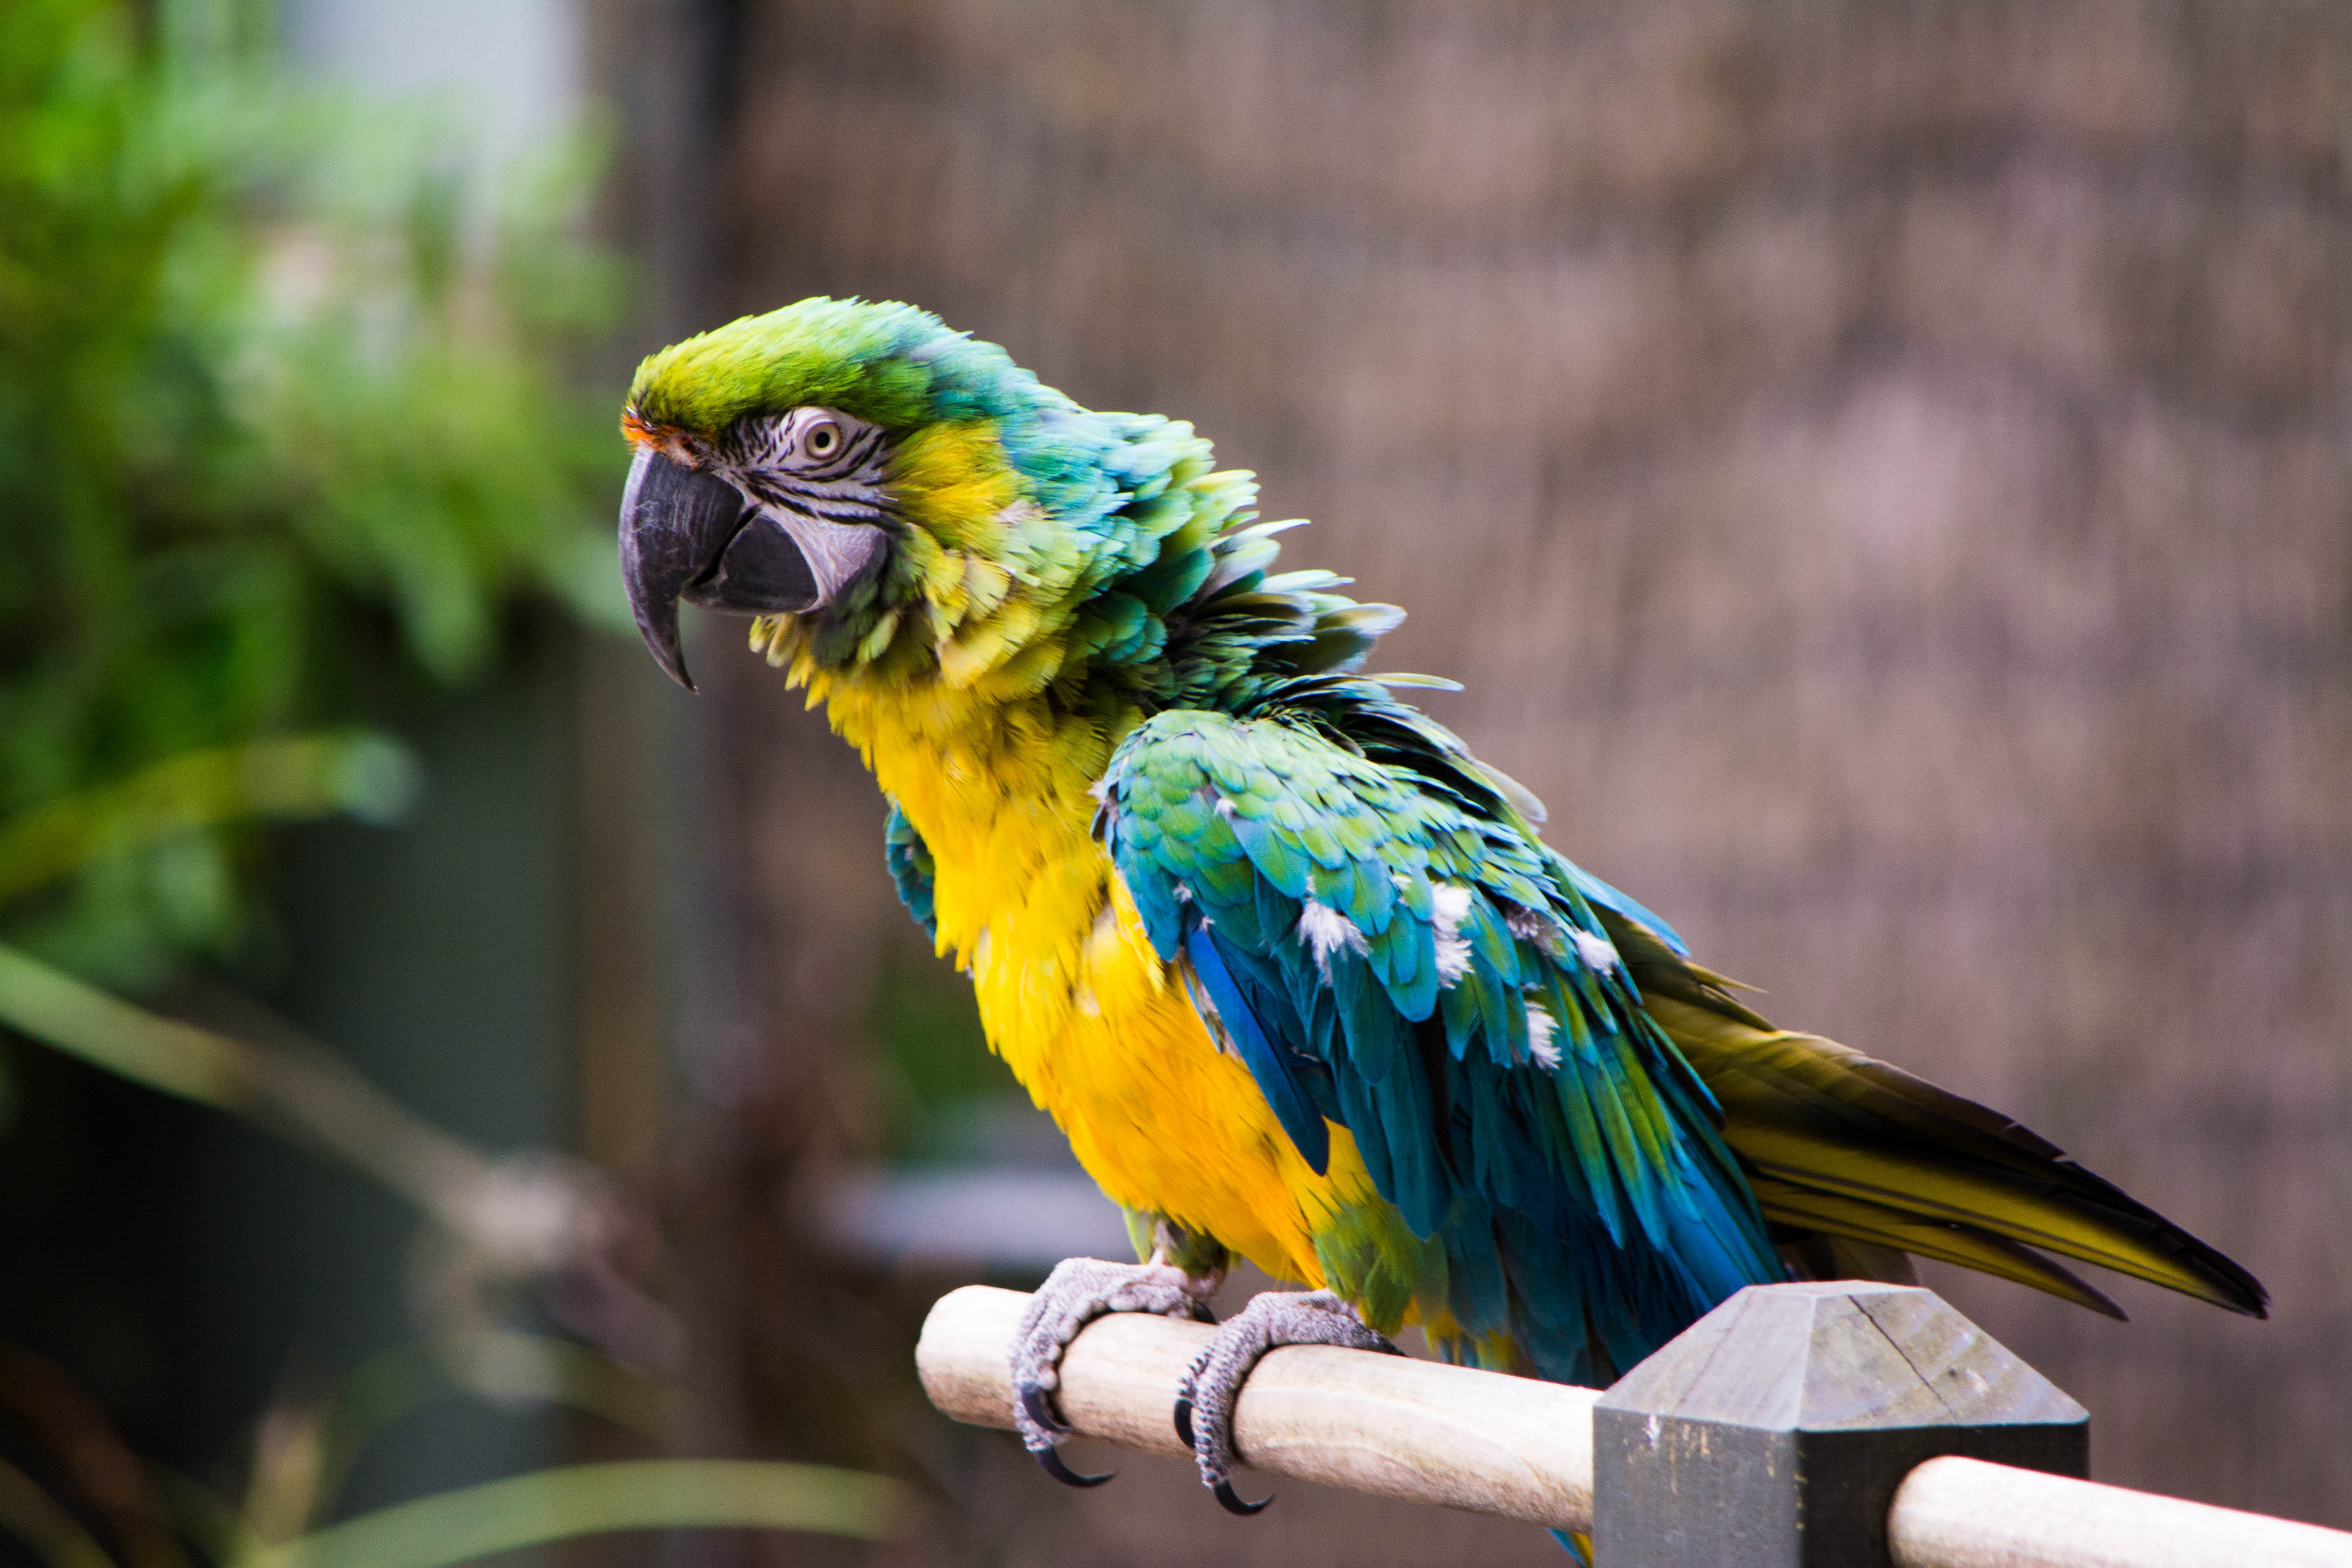 A green, blue and yellow parrot on a perch with ruffled feathers